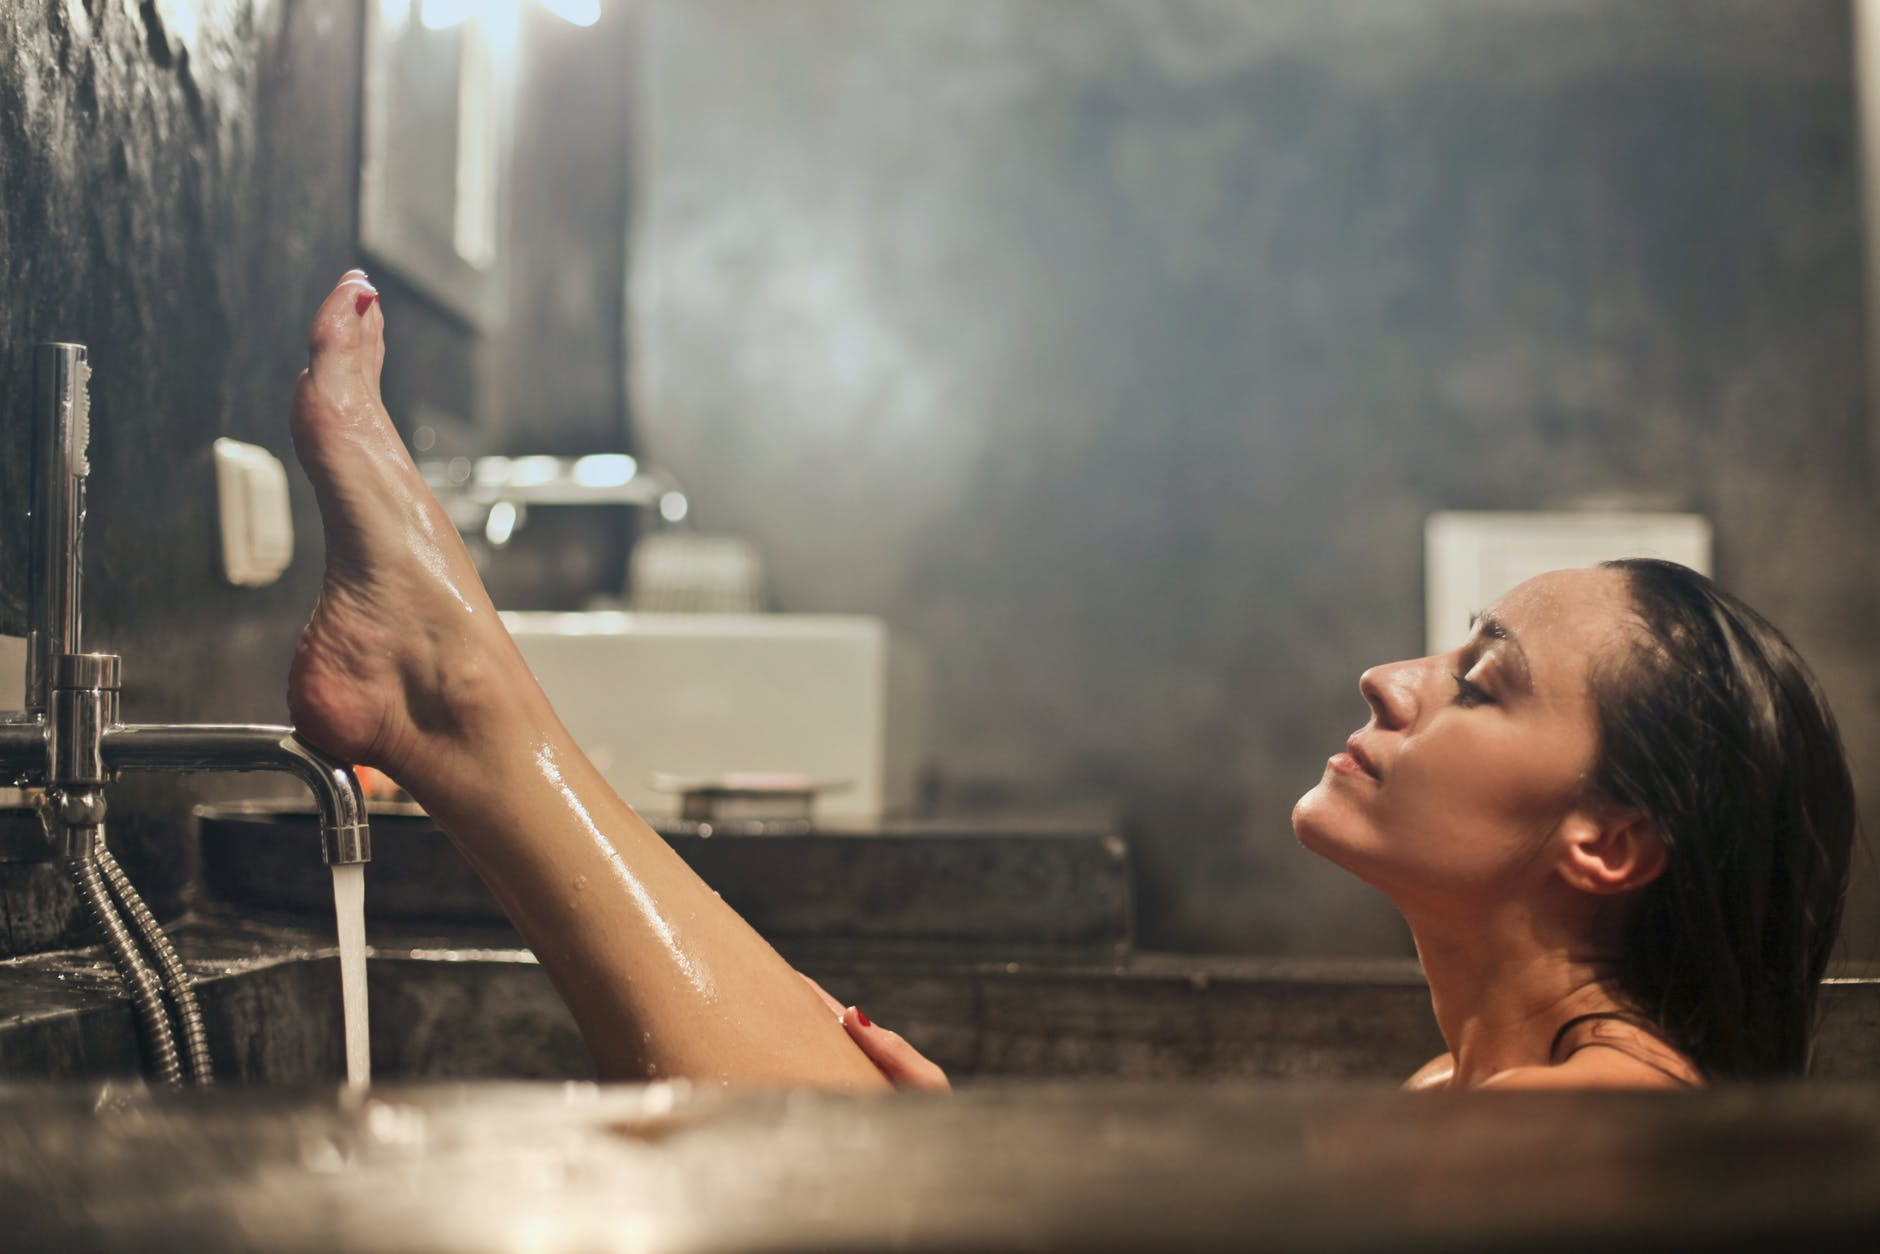 woman having a bath using a water heater